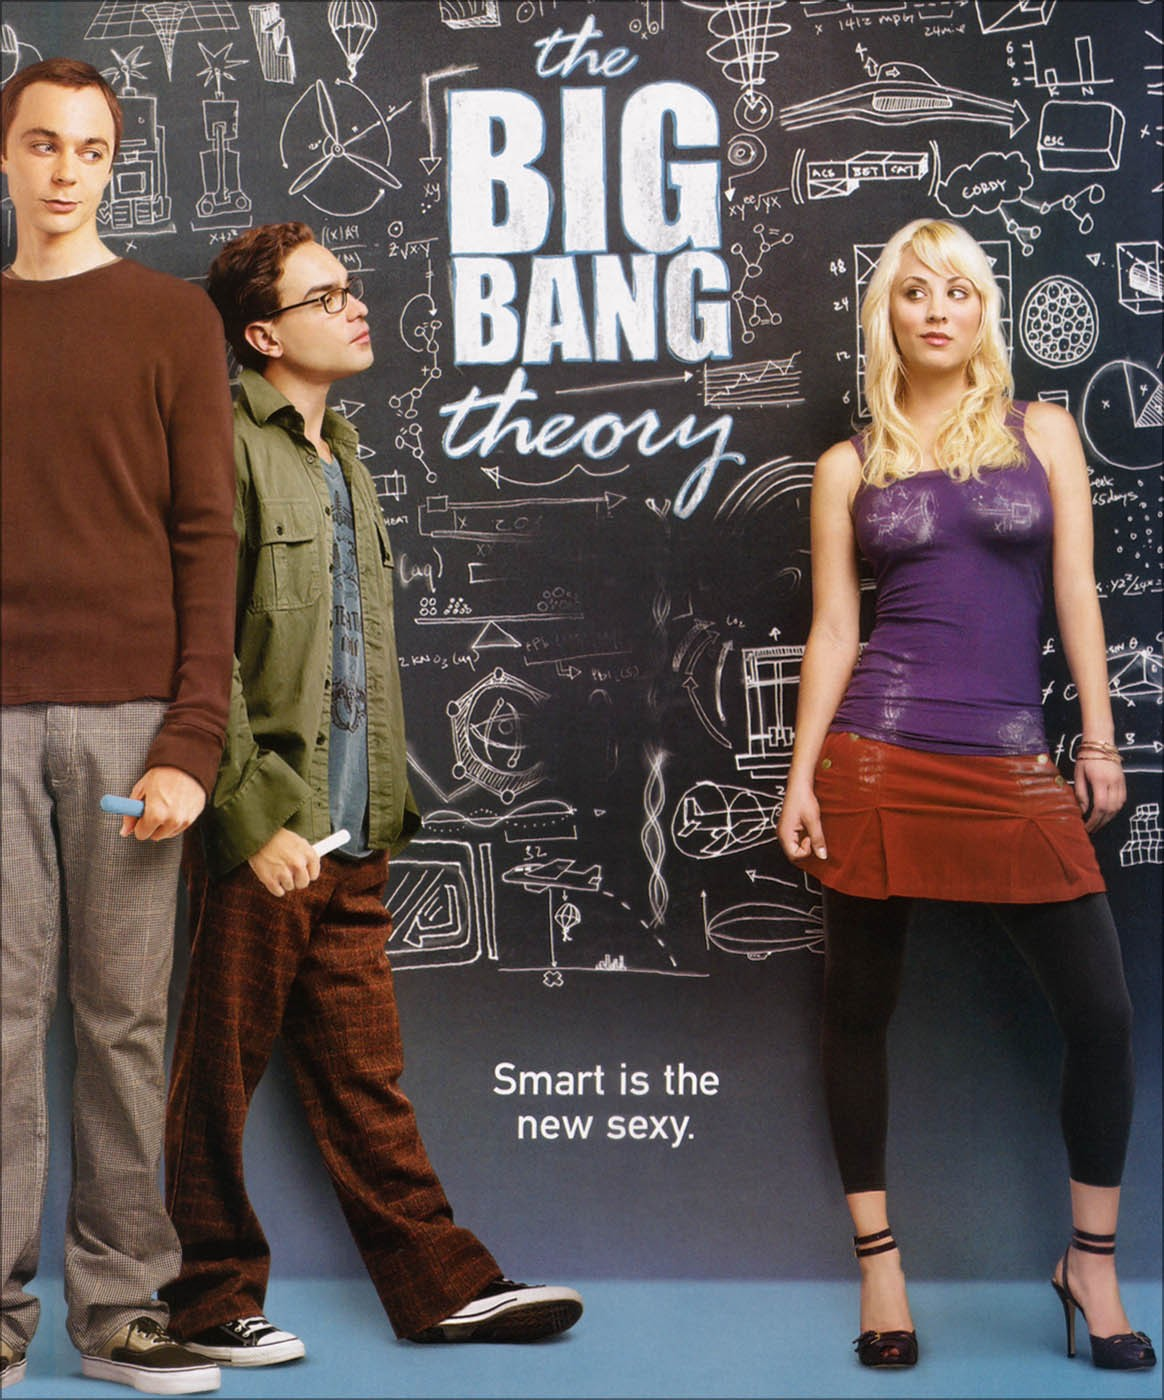 http://josephmallozzi.files.wordpress.com/2009/10/bigbangtheory.jpg